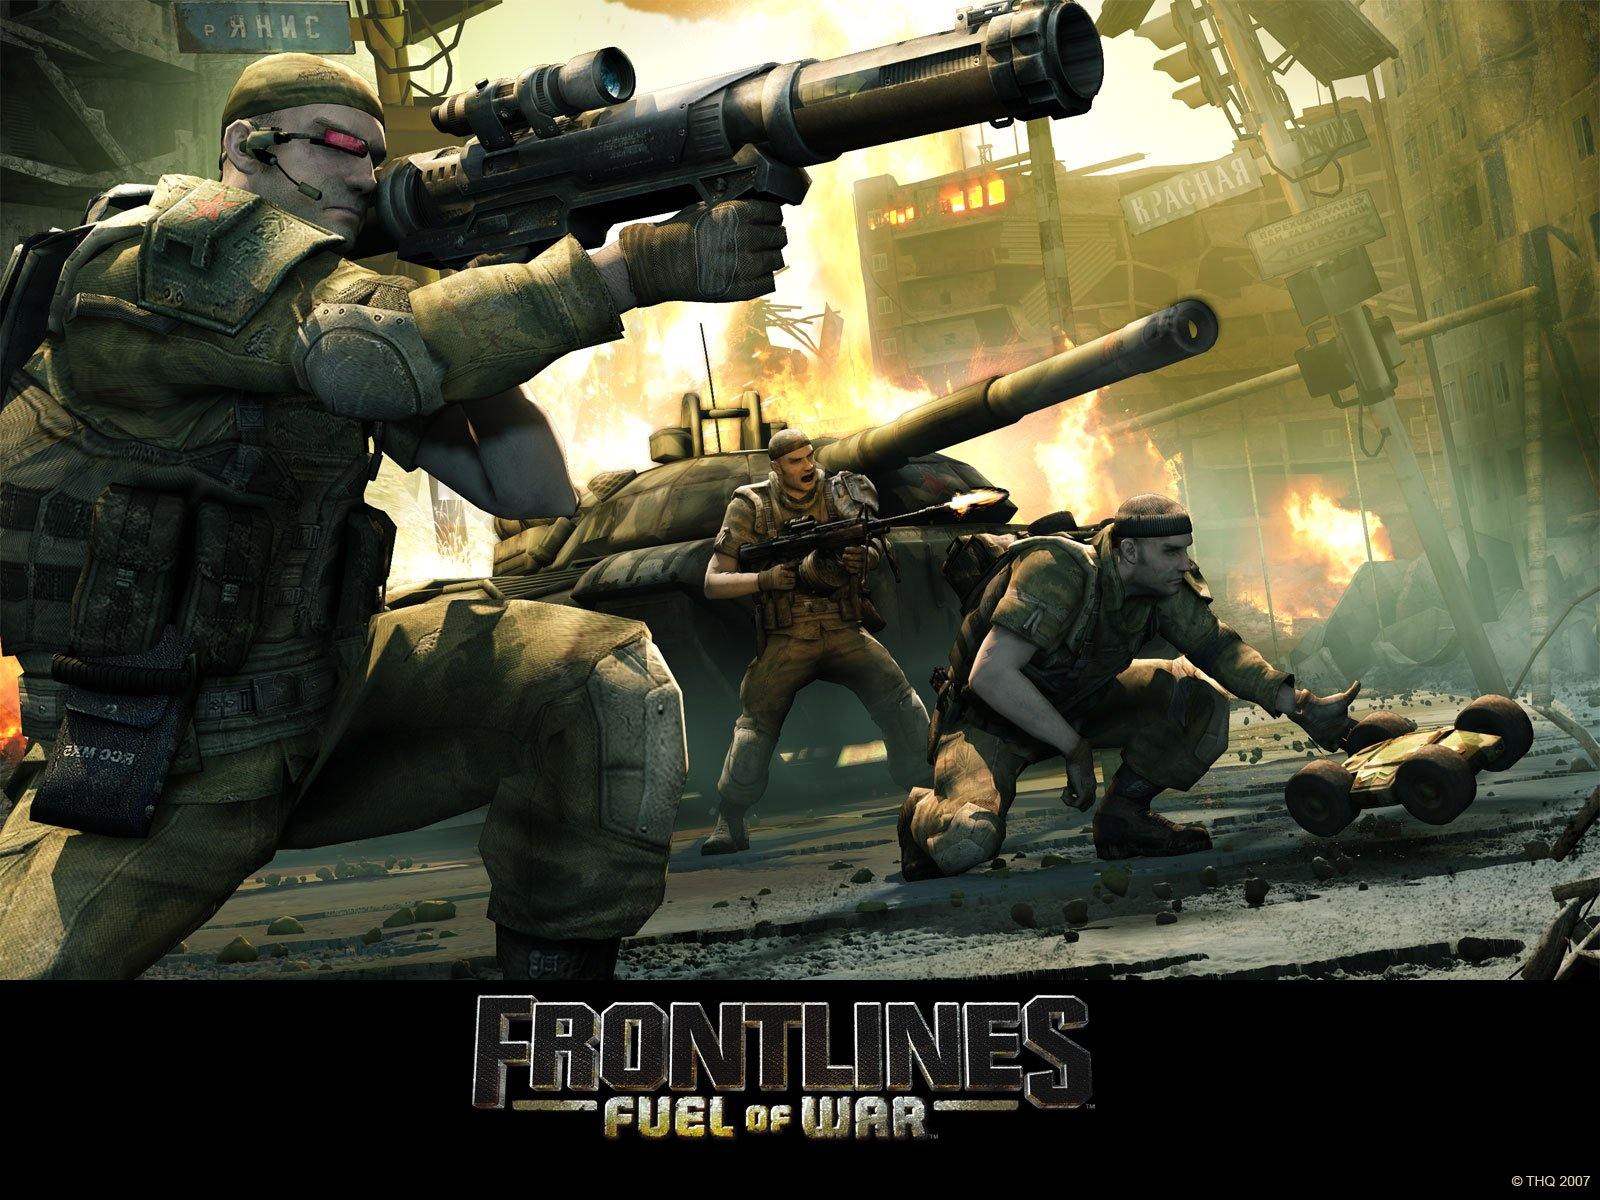 Арт к игре Frontlines: Fuel of War